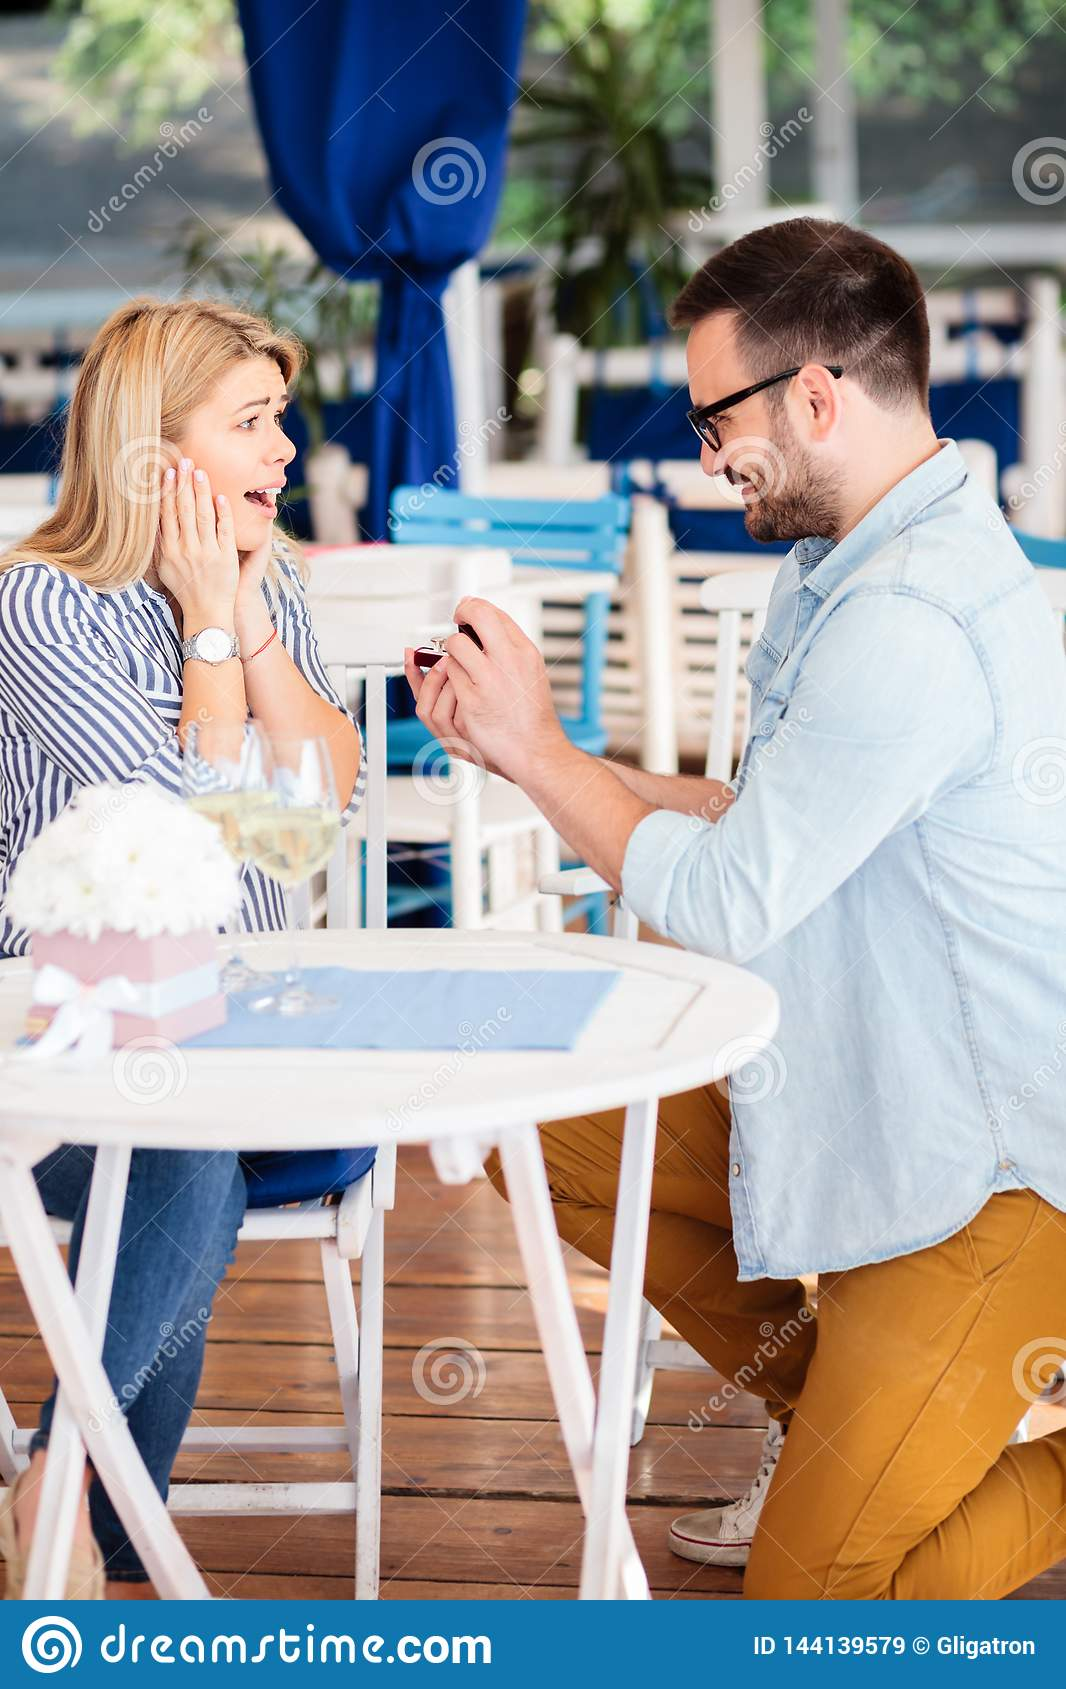 Surprised and very happy young woman after being proposed by her boyfriend